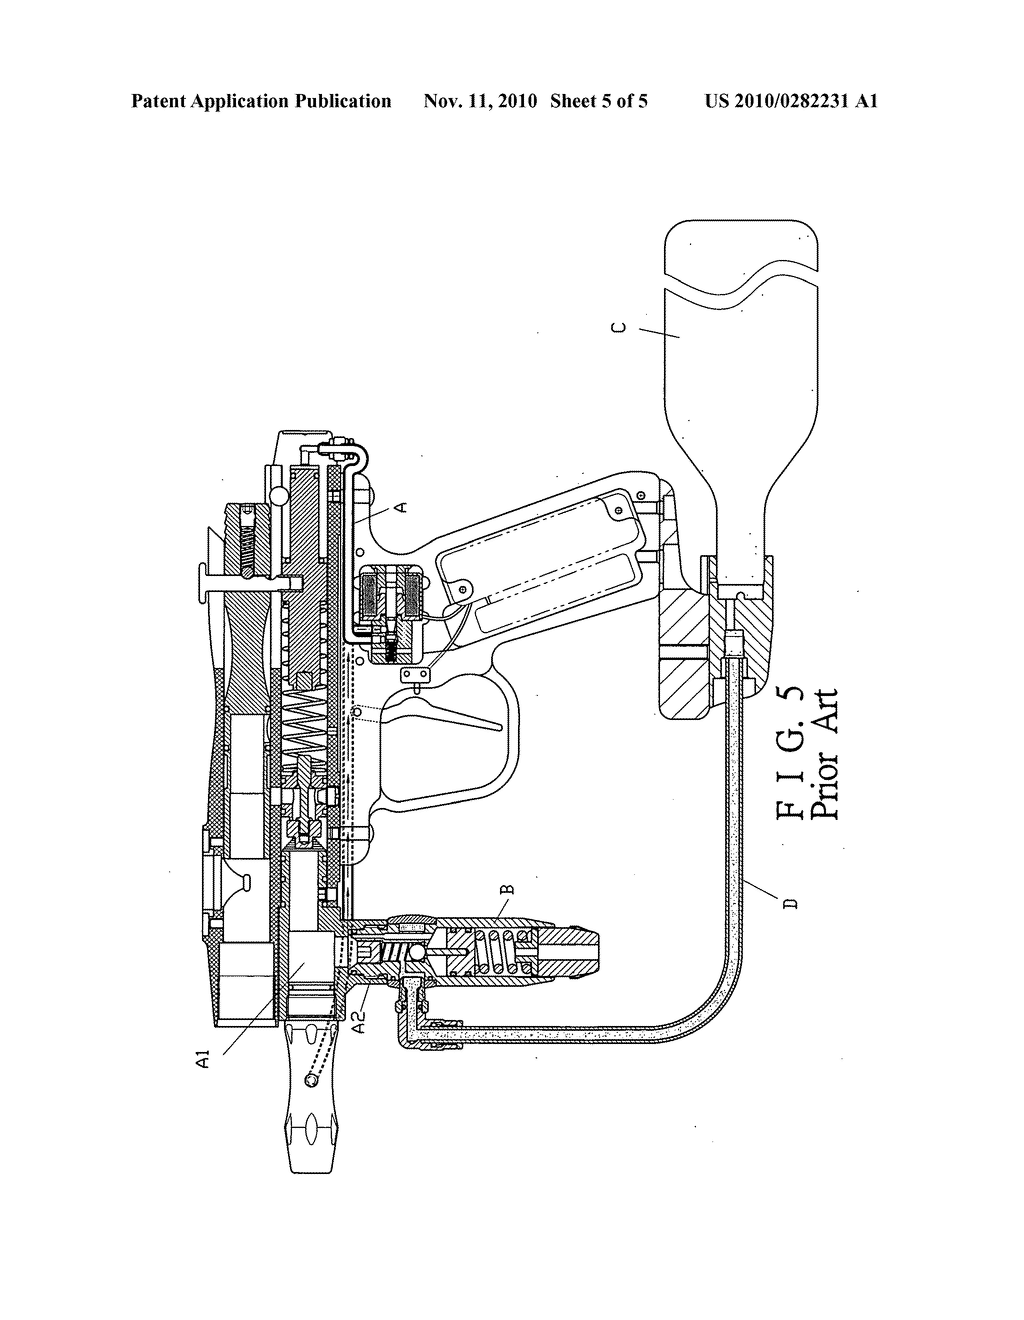 Paintball Gun Having Internal Pressure Regulator Diagram 2010 Polaris Ranger Wiring Schematic And Image 06